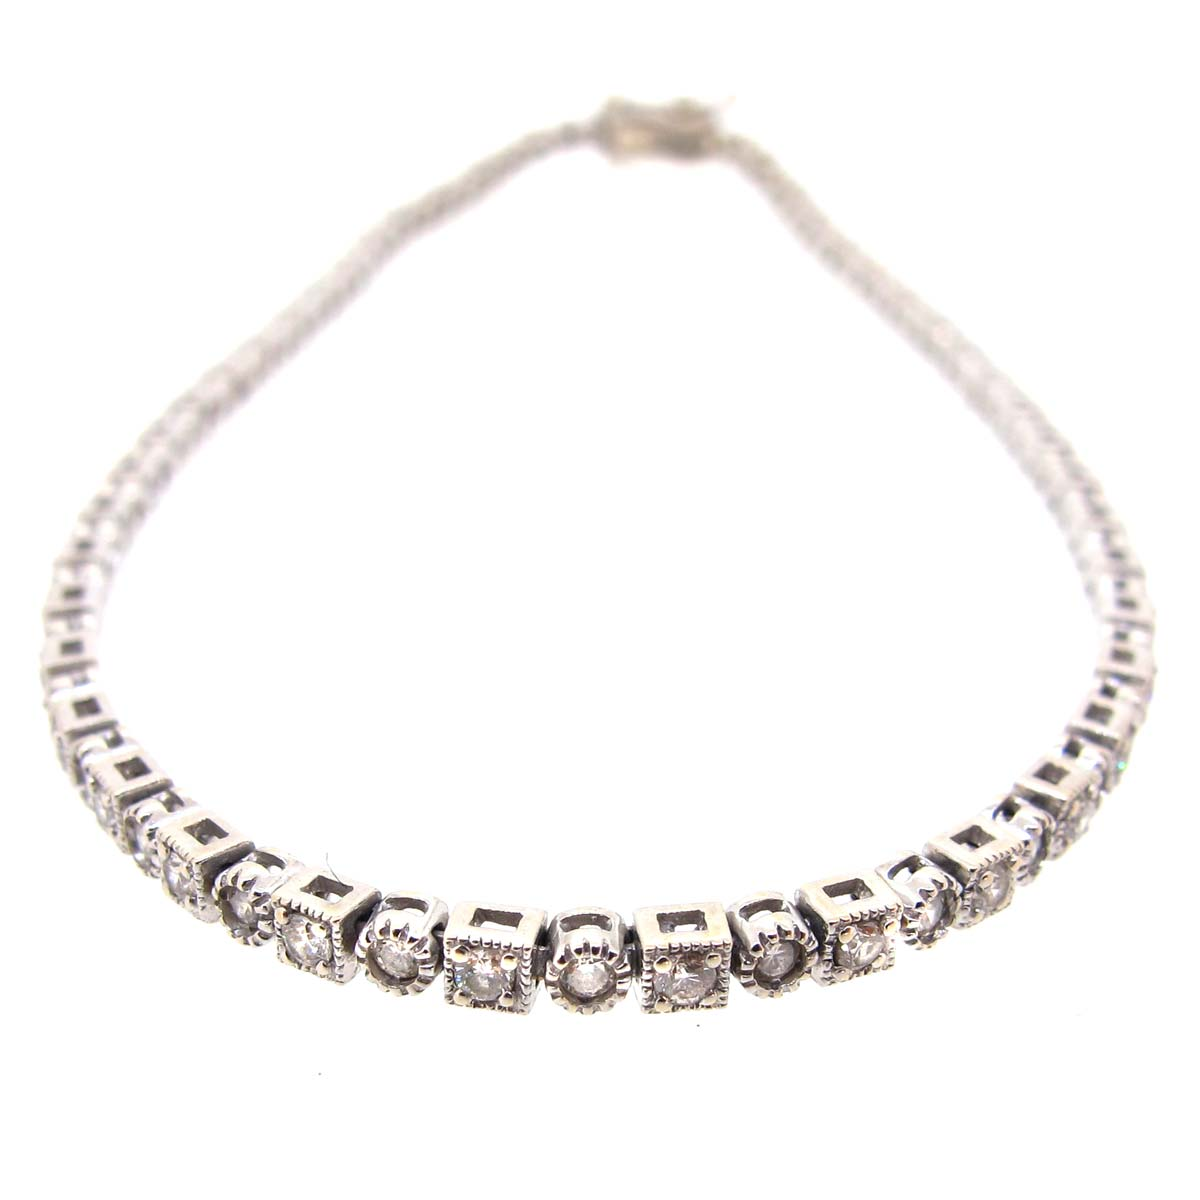 Milgrain Edge Diamond Tennis Bracelet